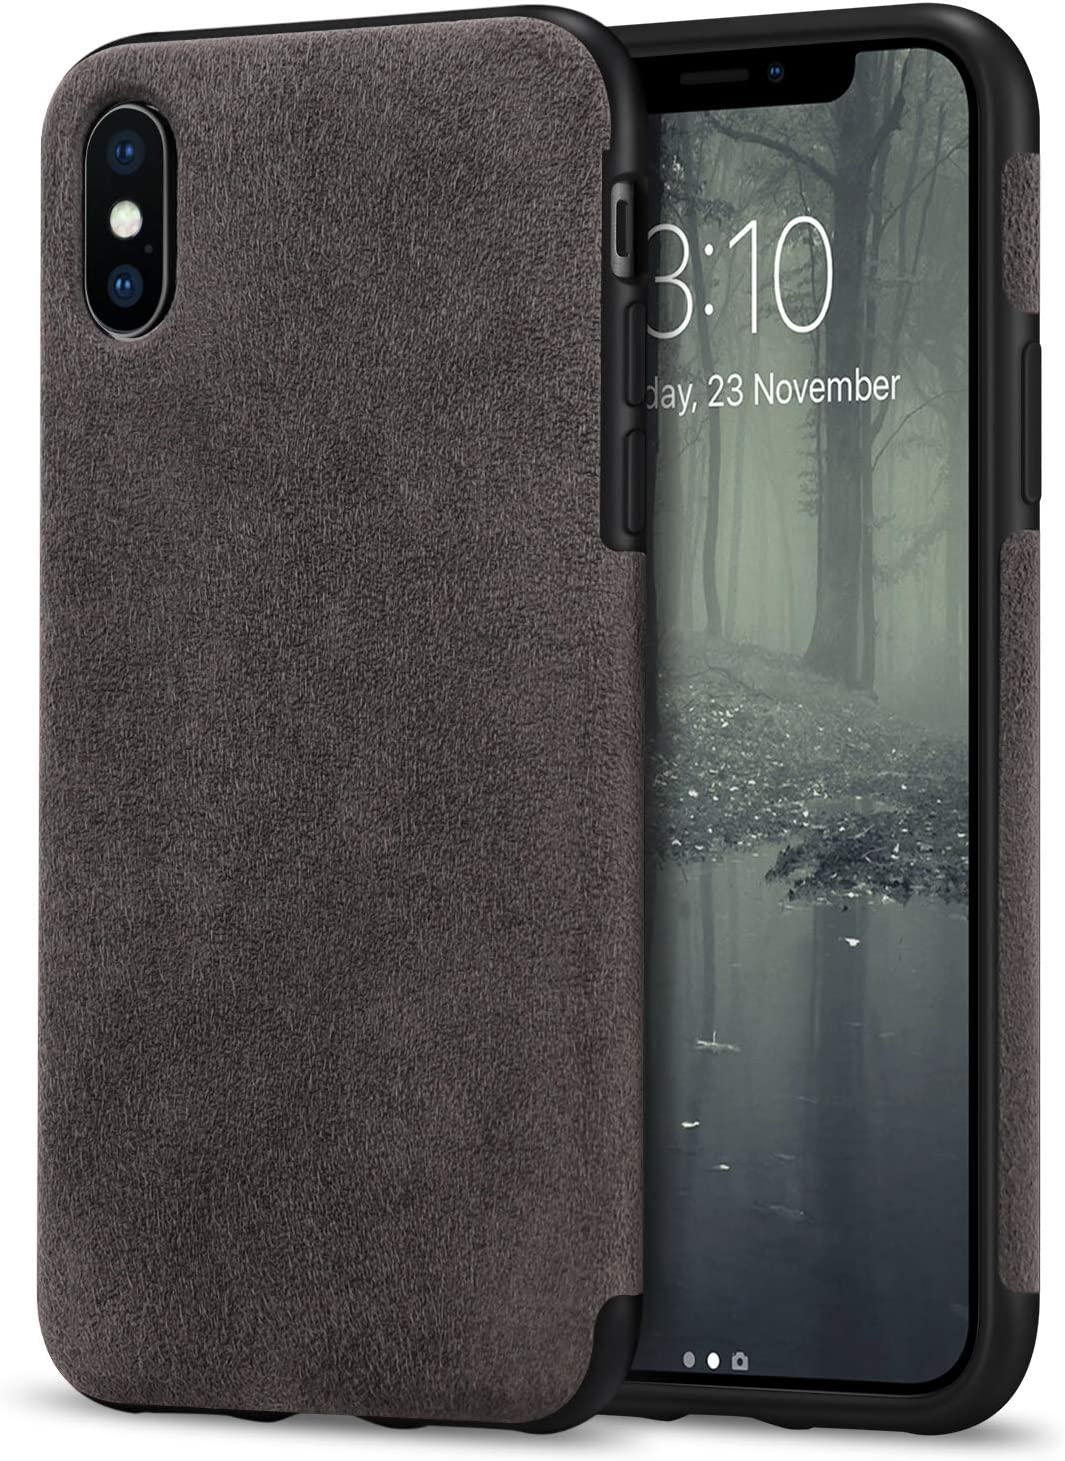 TENDLIN Compatible with iPhone Xs Max Case Premium Suede-Like Material Design Leather Hybrid Comfortable Grip Soft Cover Case Compatible with iPhone Xs Max (Brown)